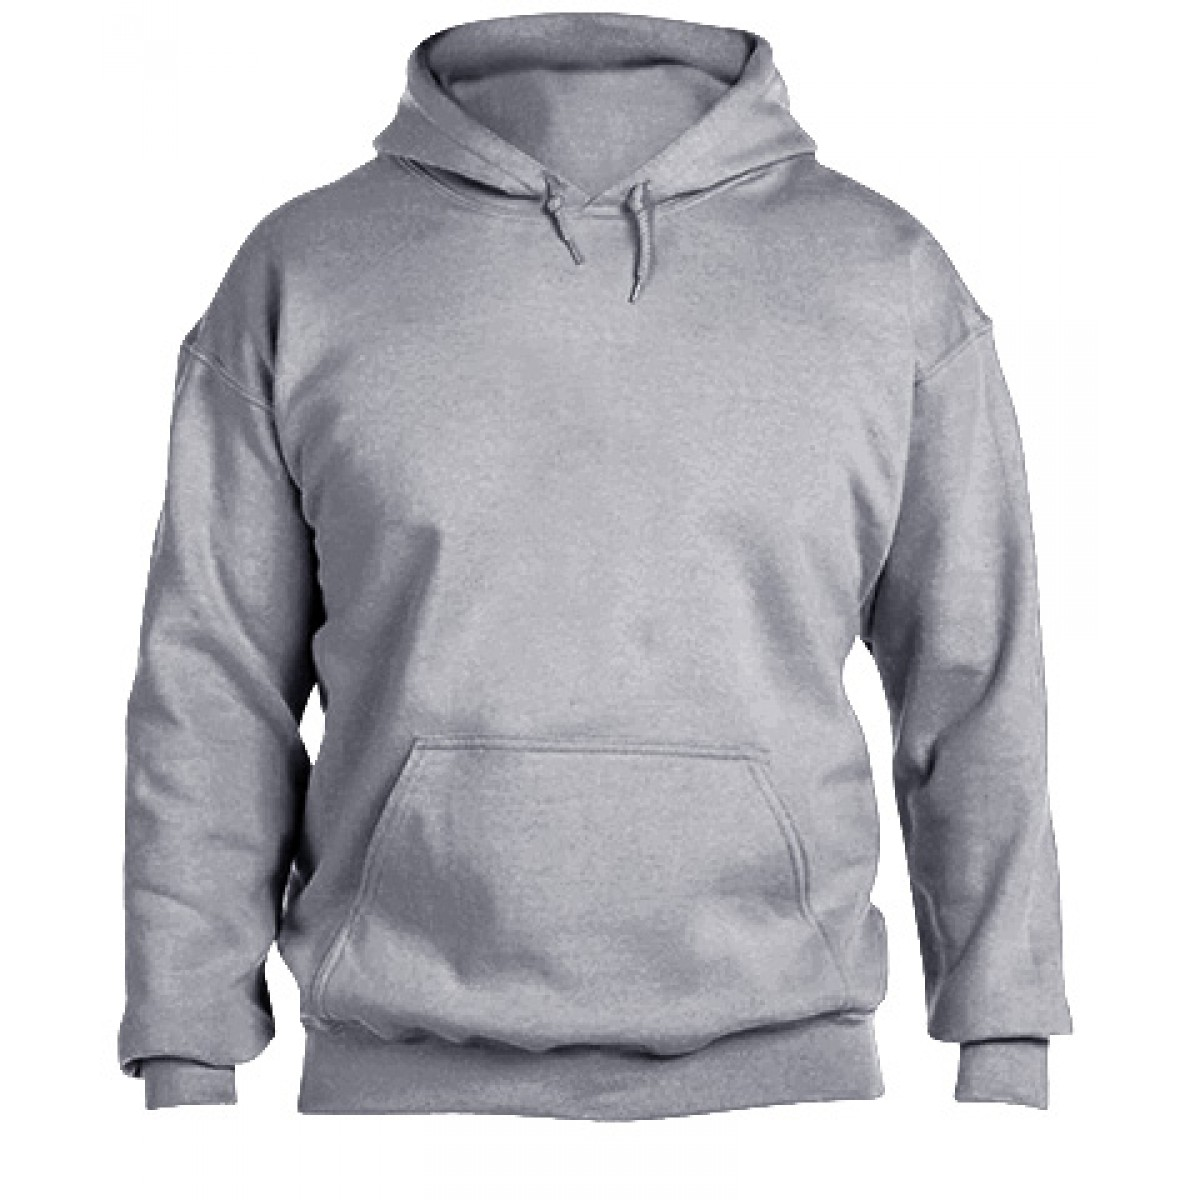 Hooded Sweatshirt 50/50 Heavy Blend-Sports Grey-YM